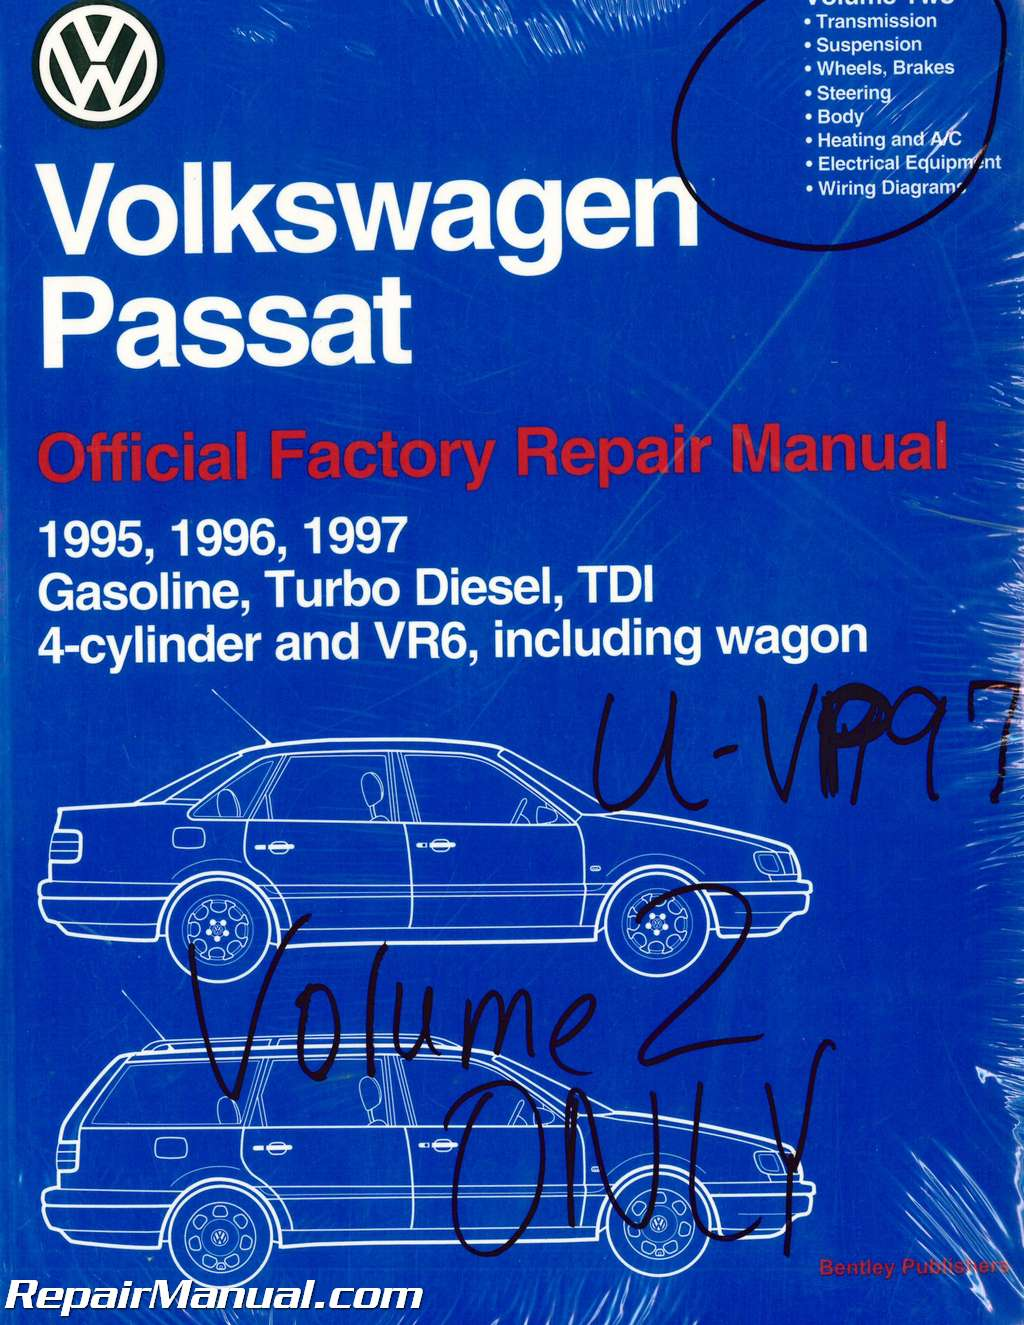 1996 volkswagen wiring diagram volume 2 only volkswagen passat  b4  repair manual 1995 1996  volkswagen passat  b4  repair manual